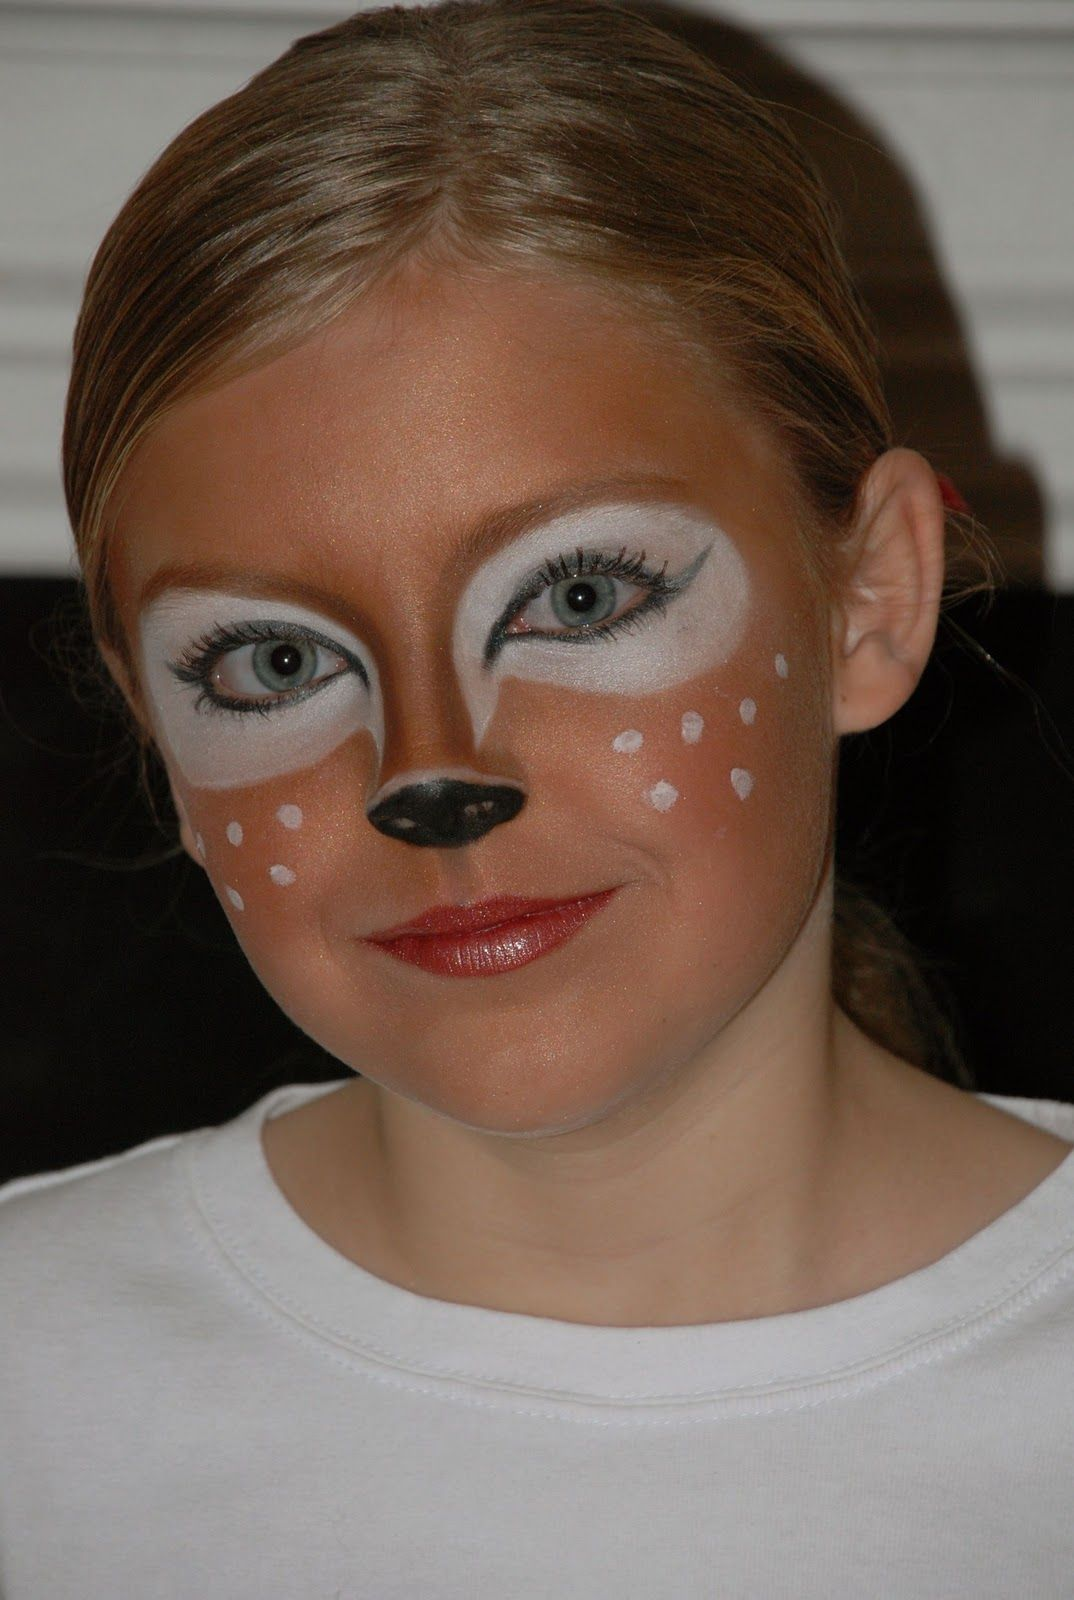 of people with Deer face paint For child